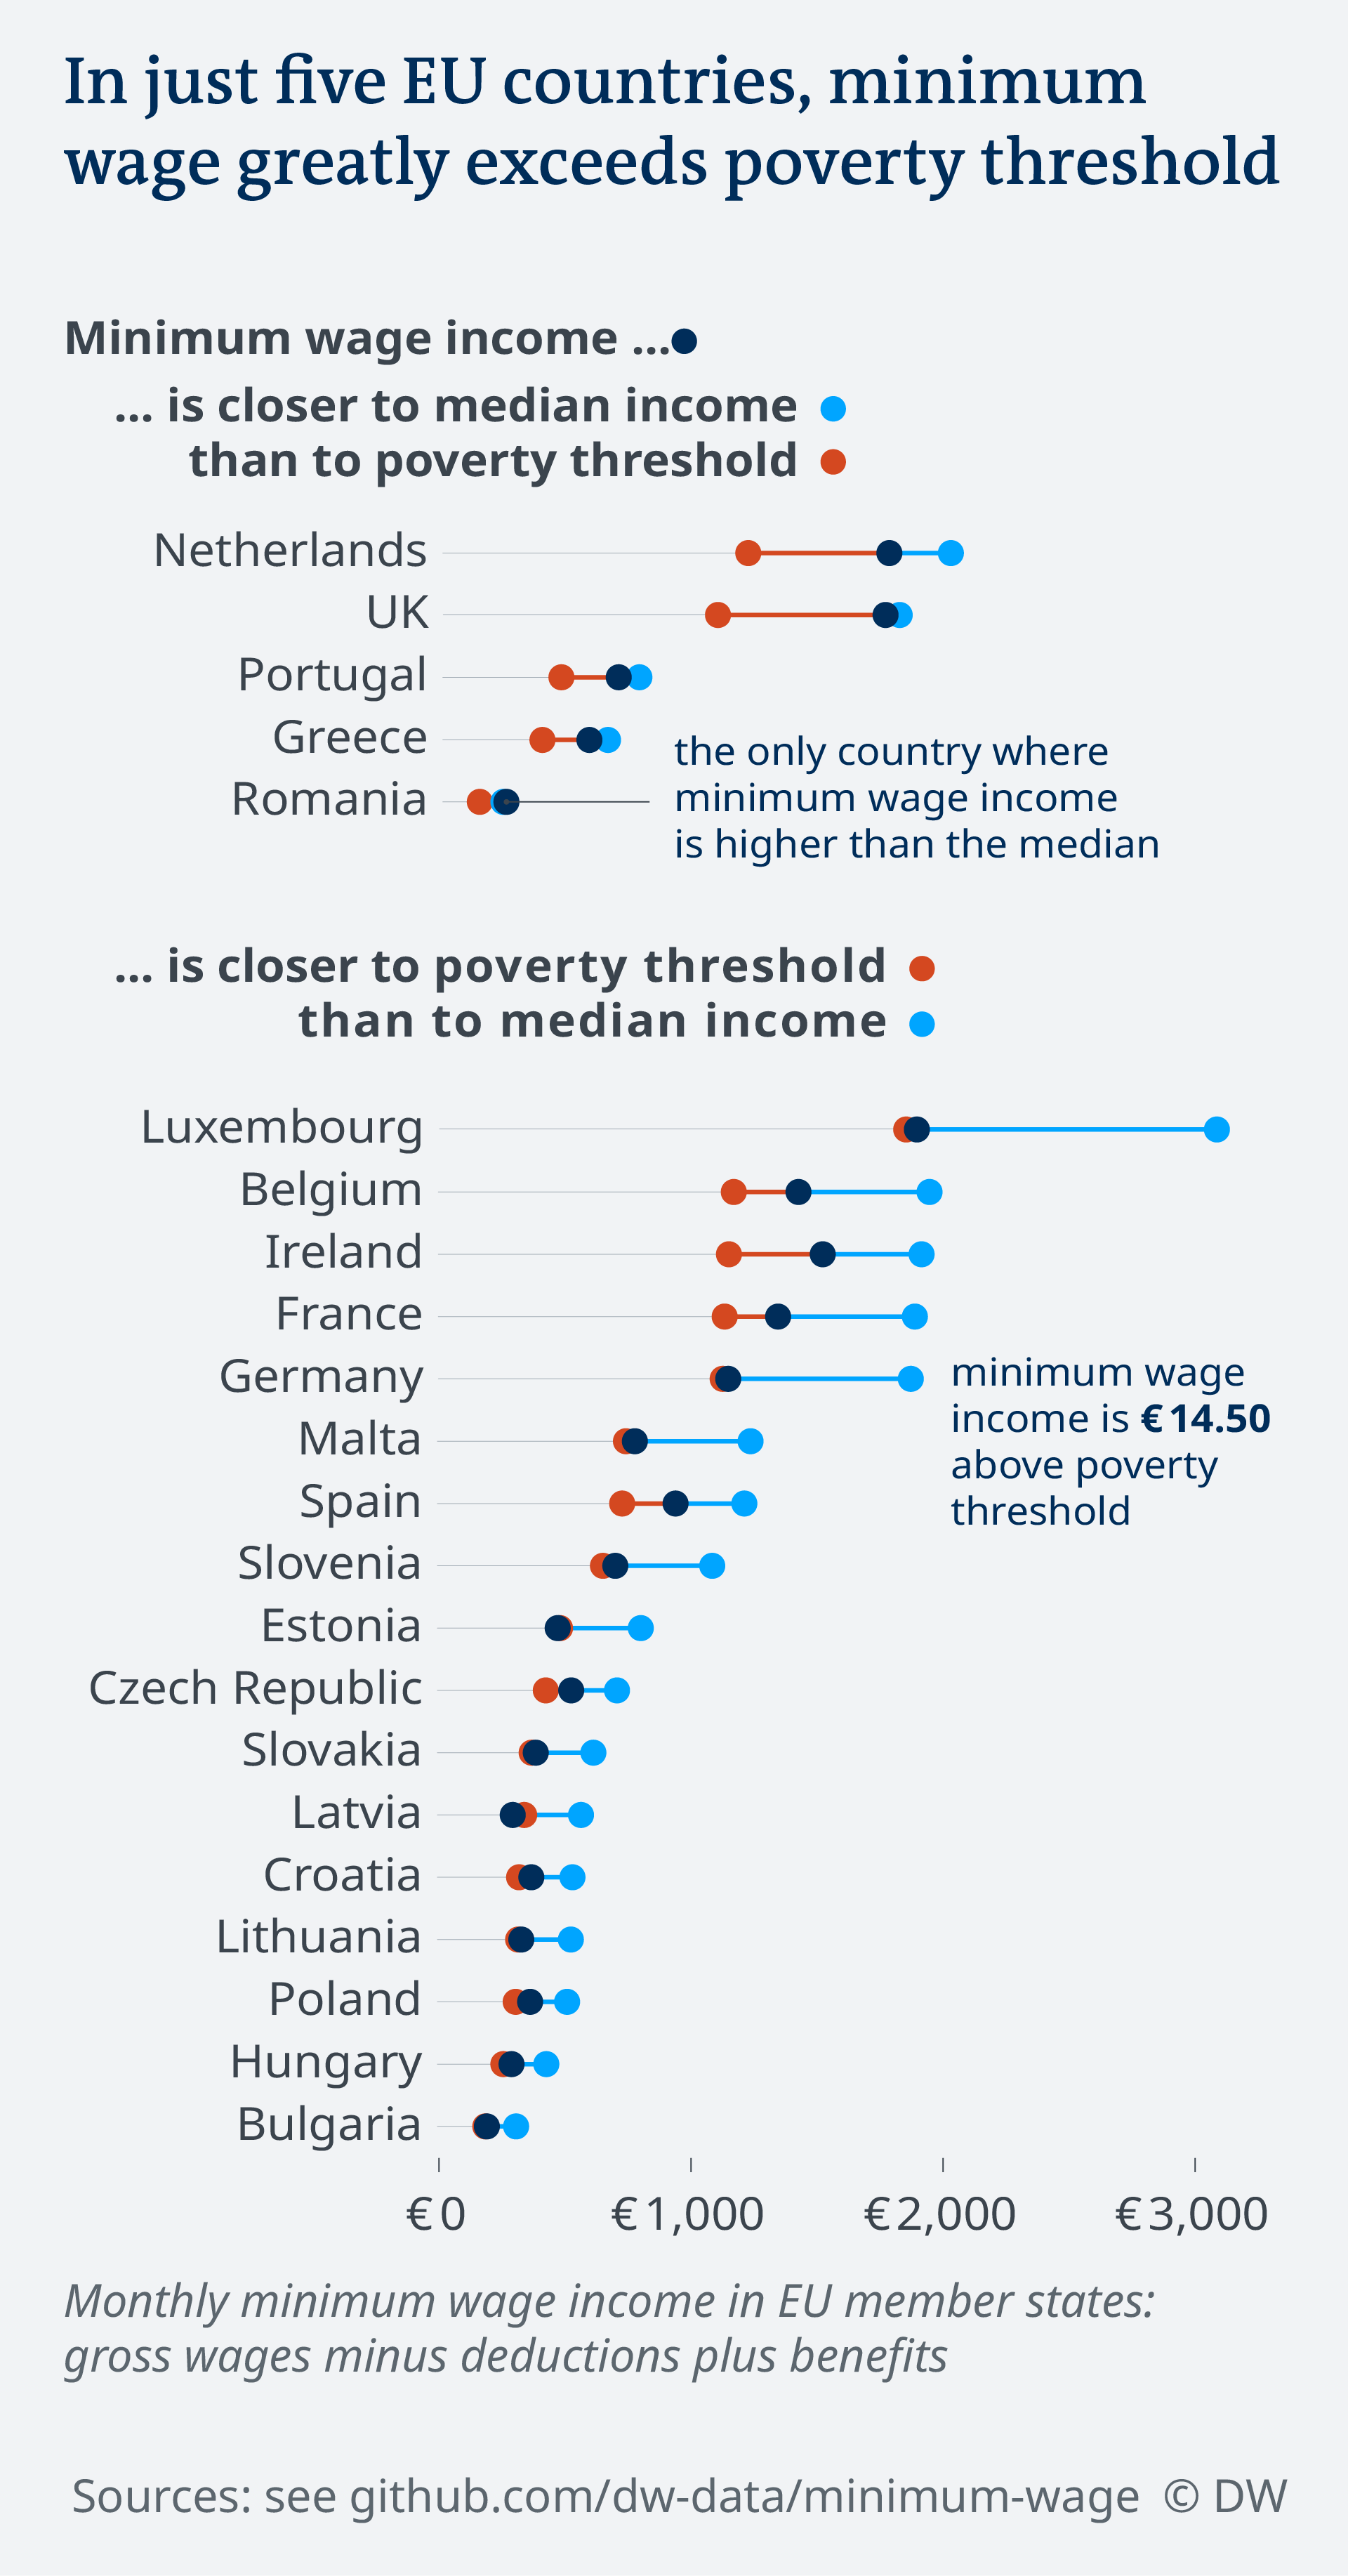 Data visualization minimum wage vs poverty threshold vs median income